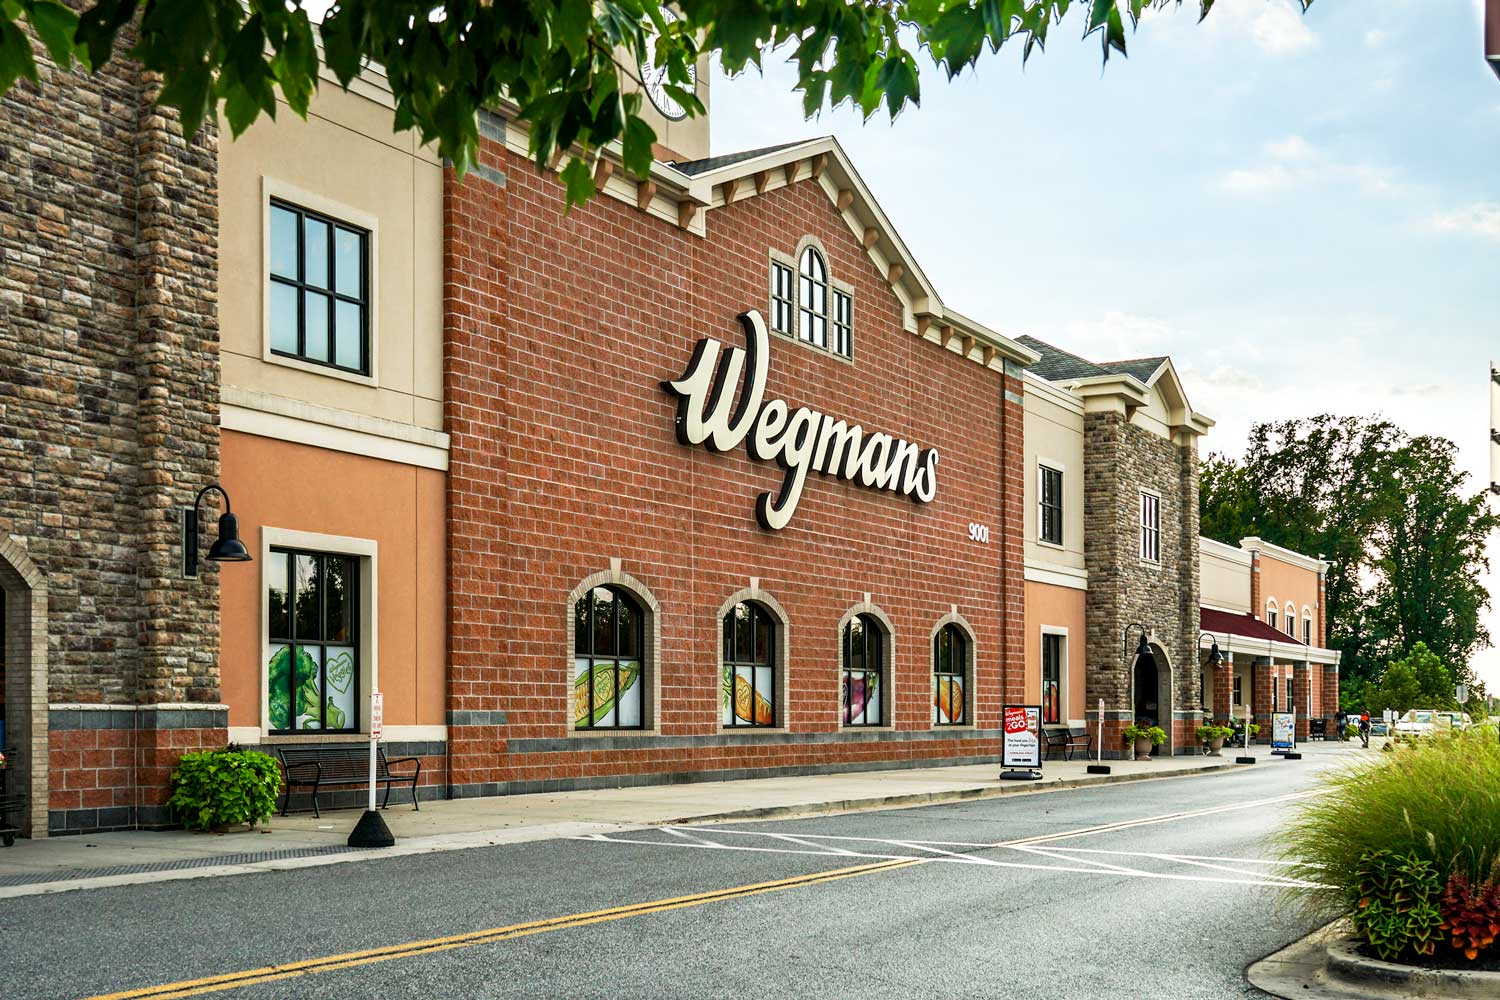 Wegmans is 15 minutes from Heritage Square Apartments in New Carrollton, MD